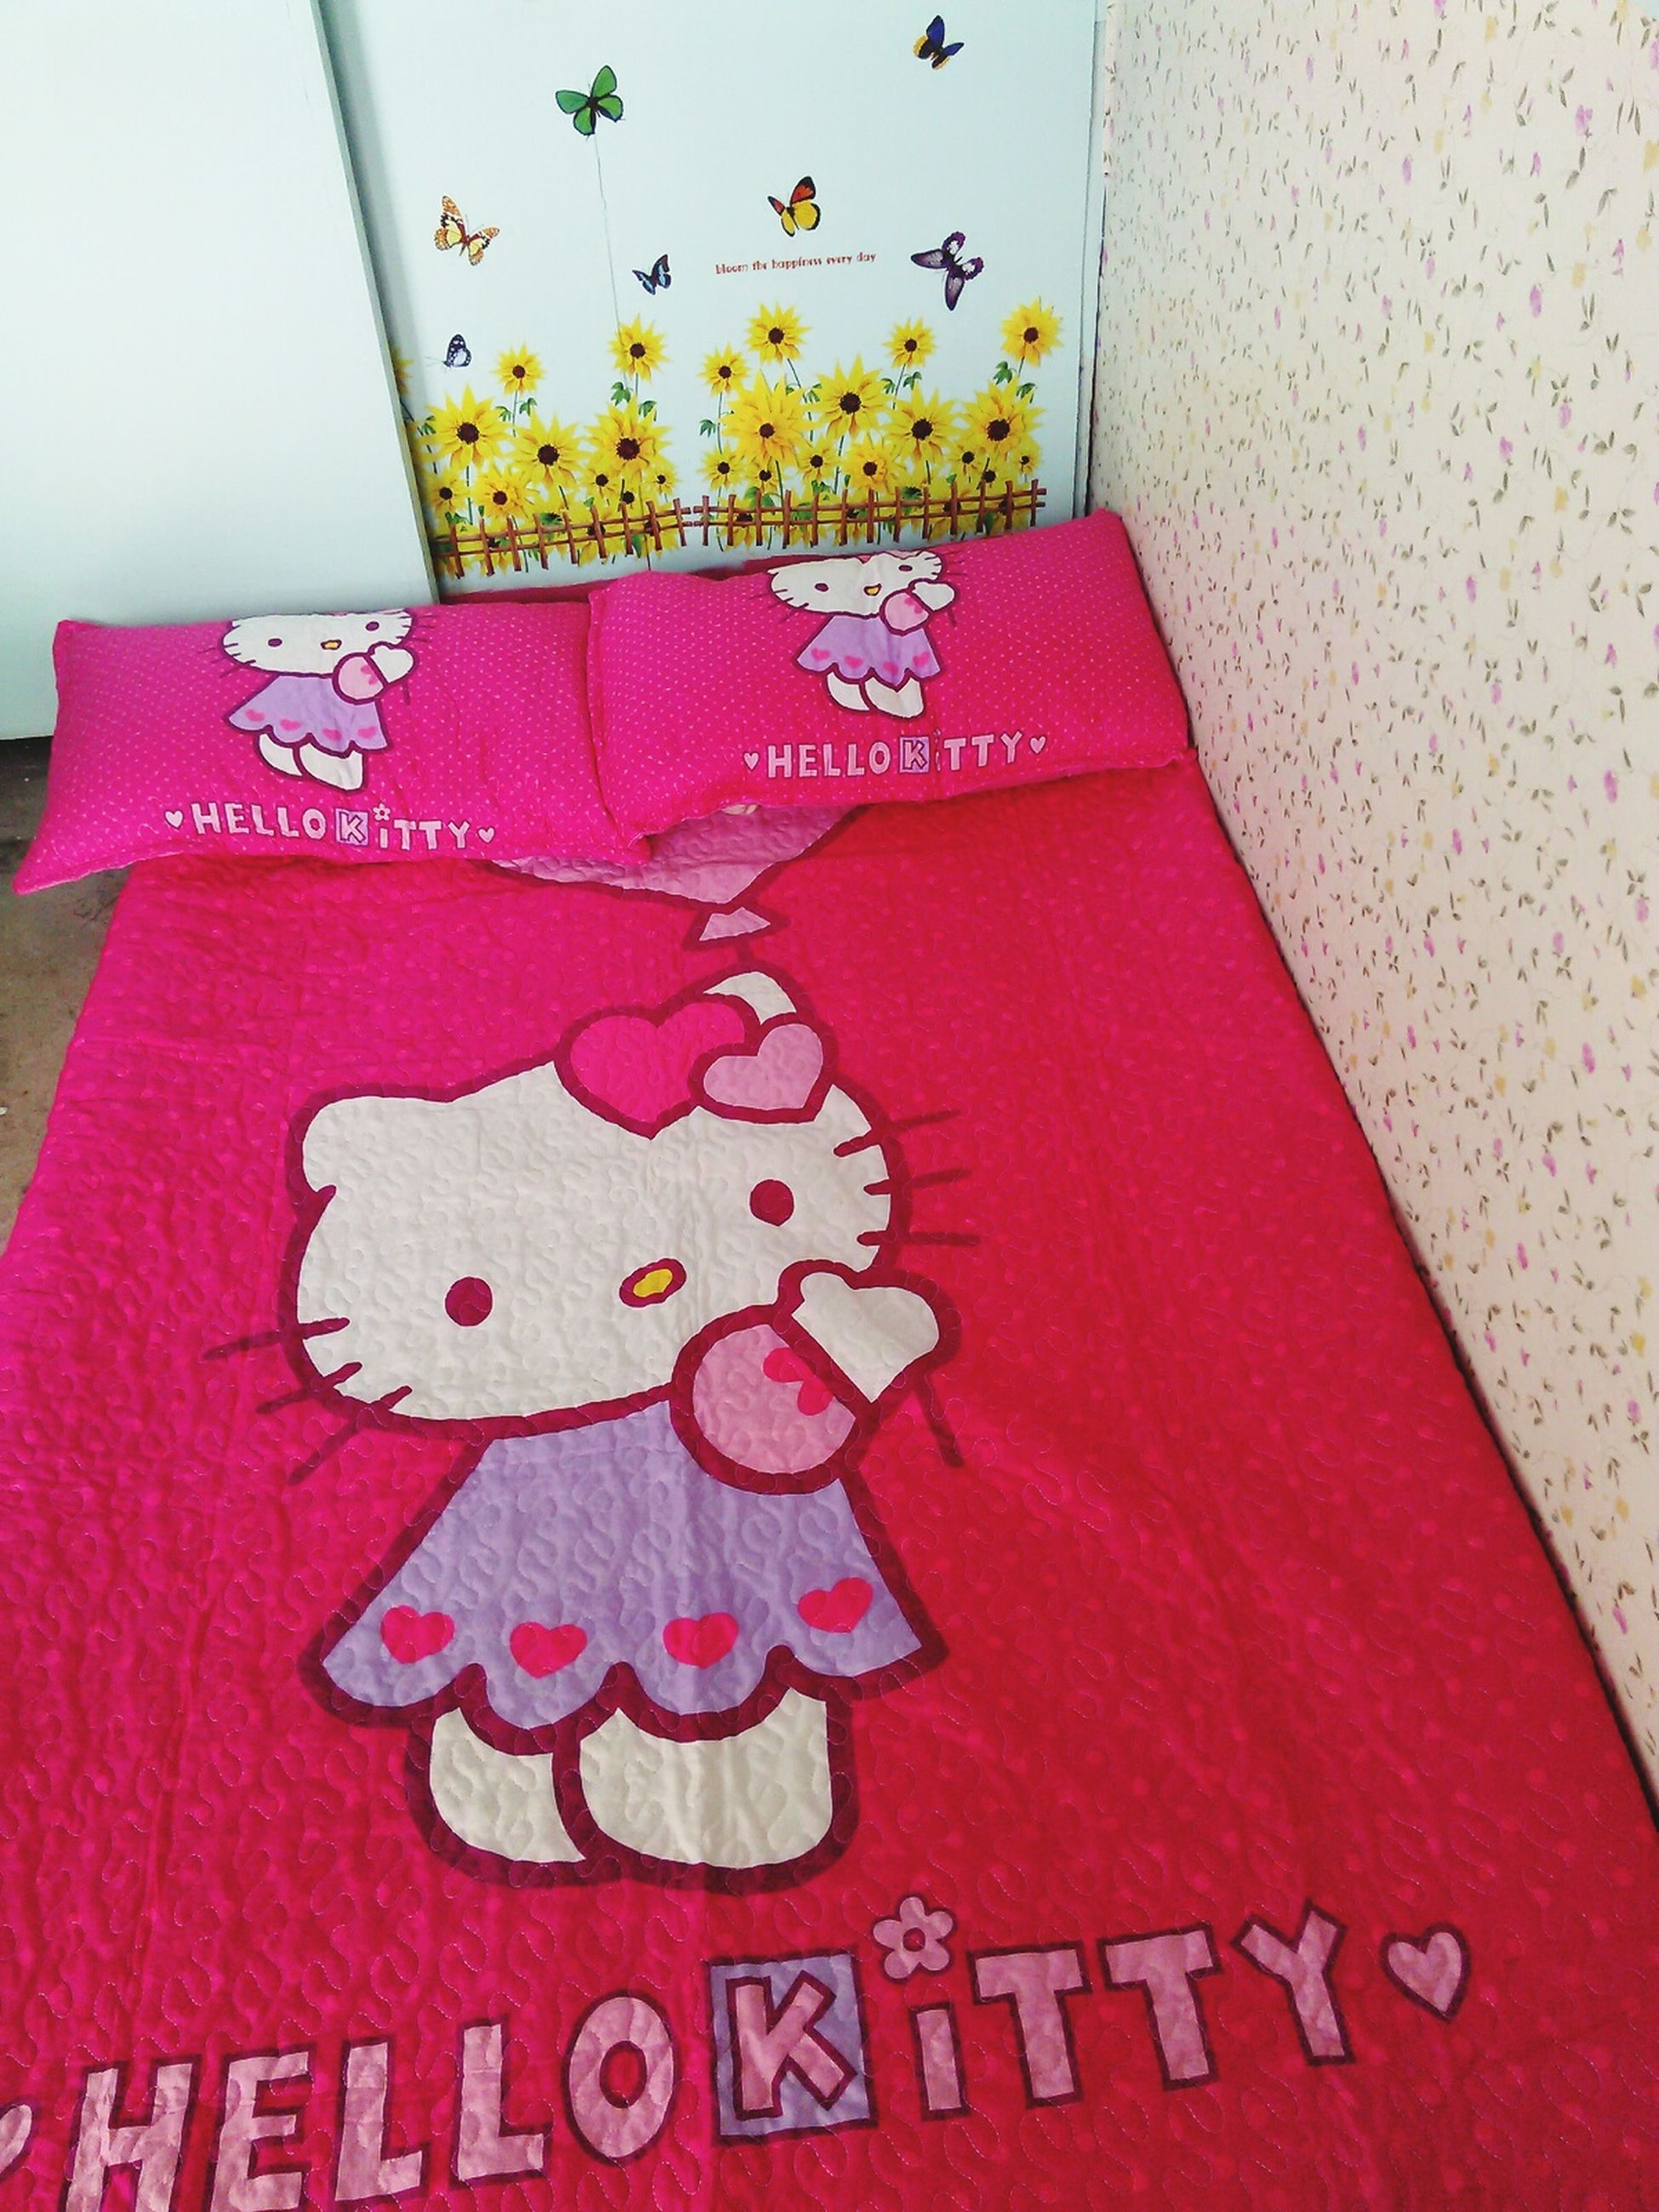 Done CleaningMyRoom  :) Hellokitty Pink Flower Rest & Relax 😜😍